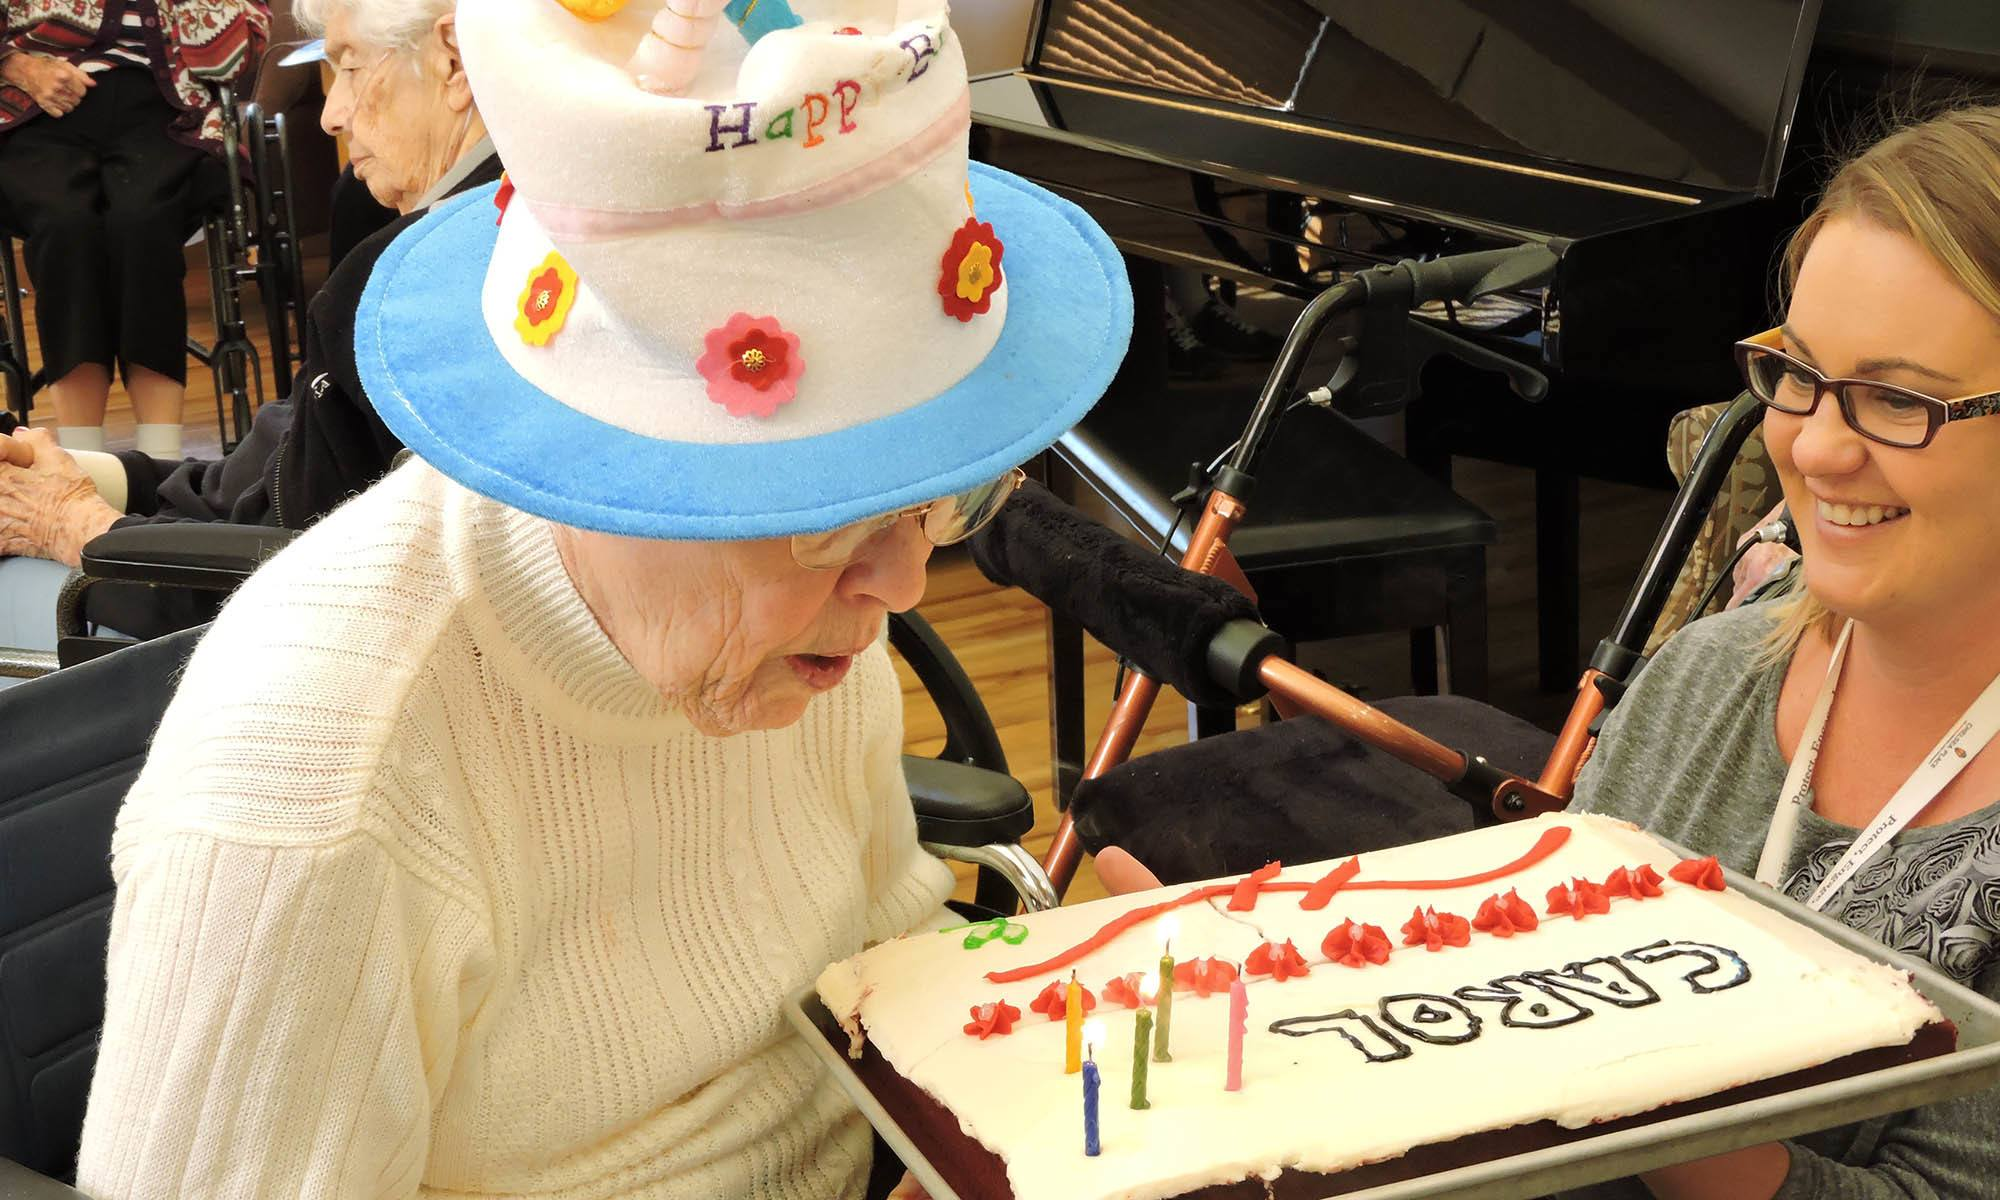 Birthday party at senior living in Westminster, CO